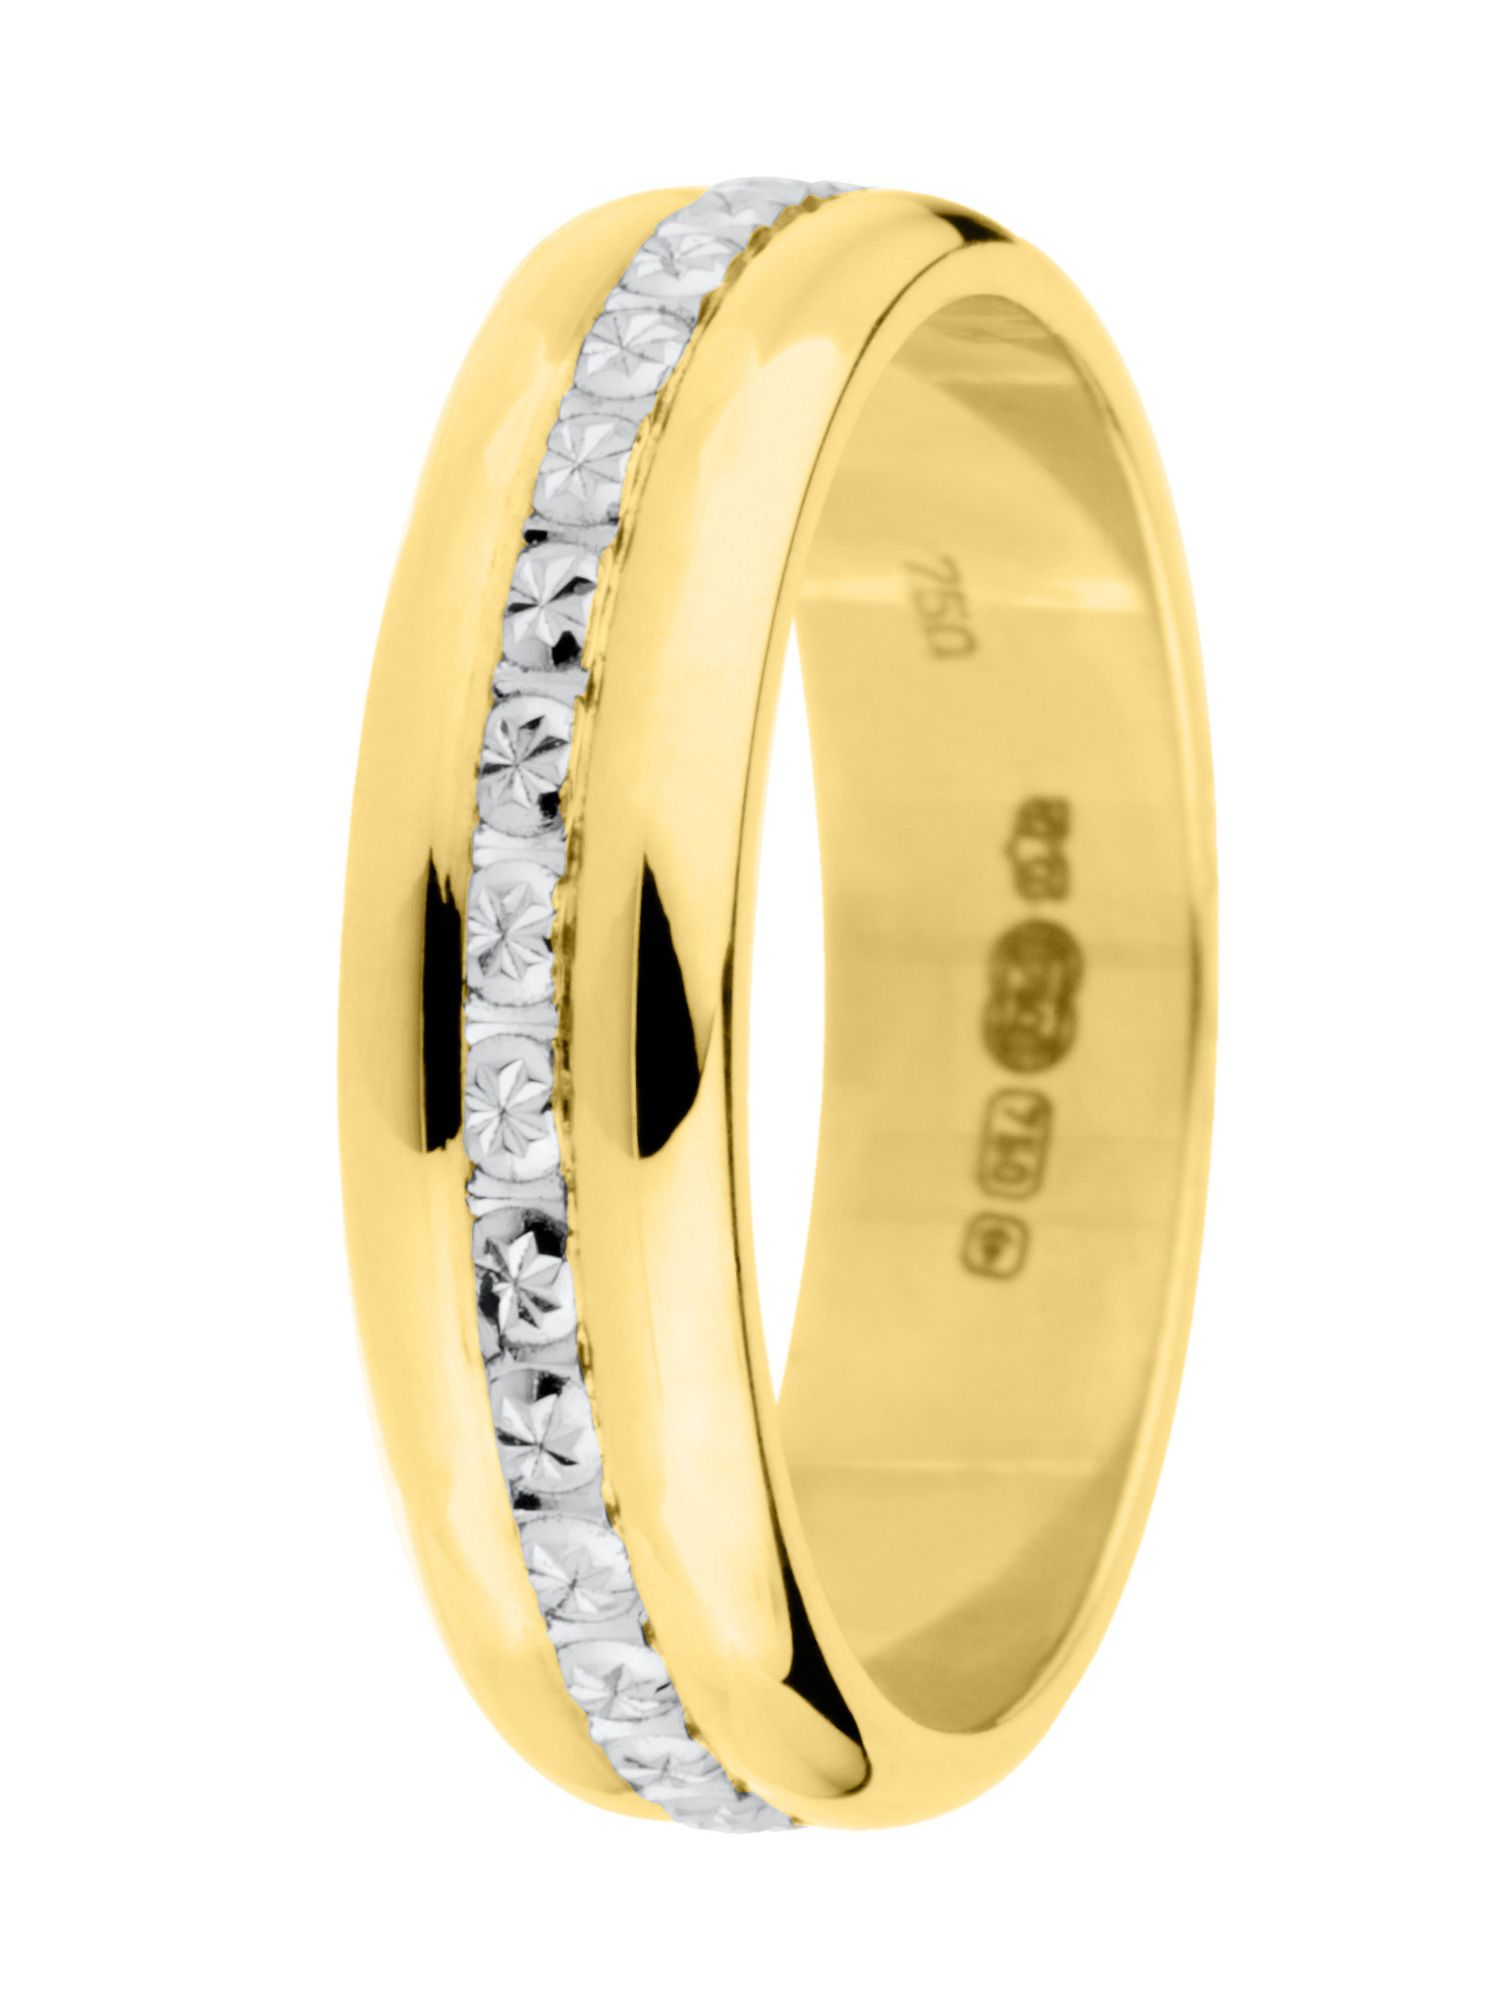 Goldsmiths Ladies 18ct 2 colour gold sparkle wedding ring, Multi-Coloured